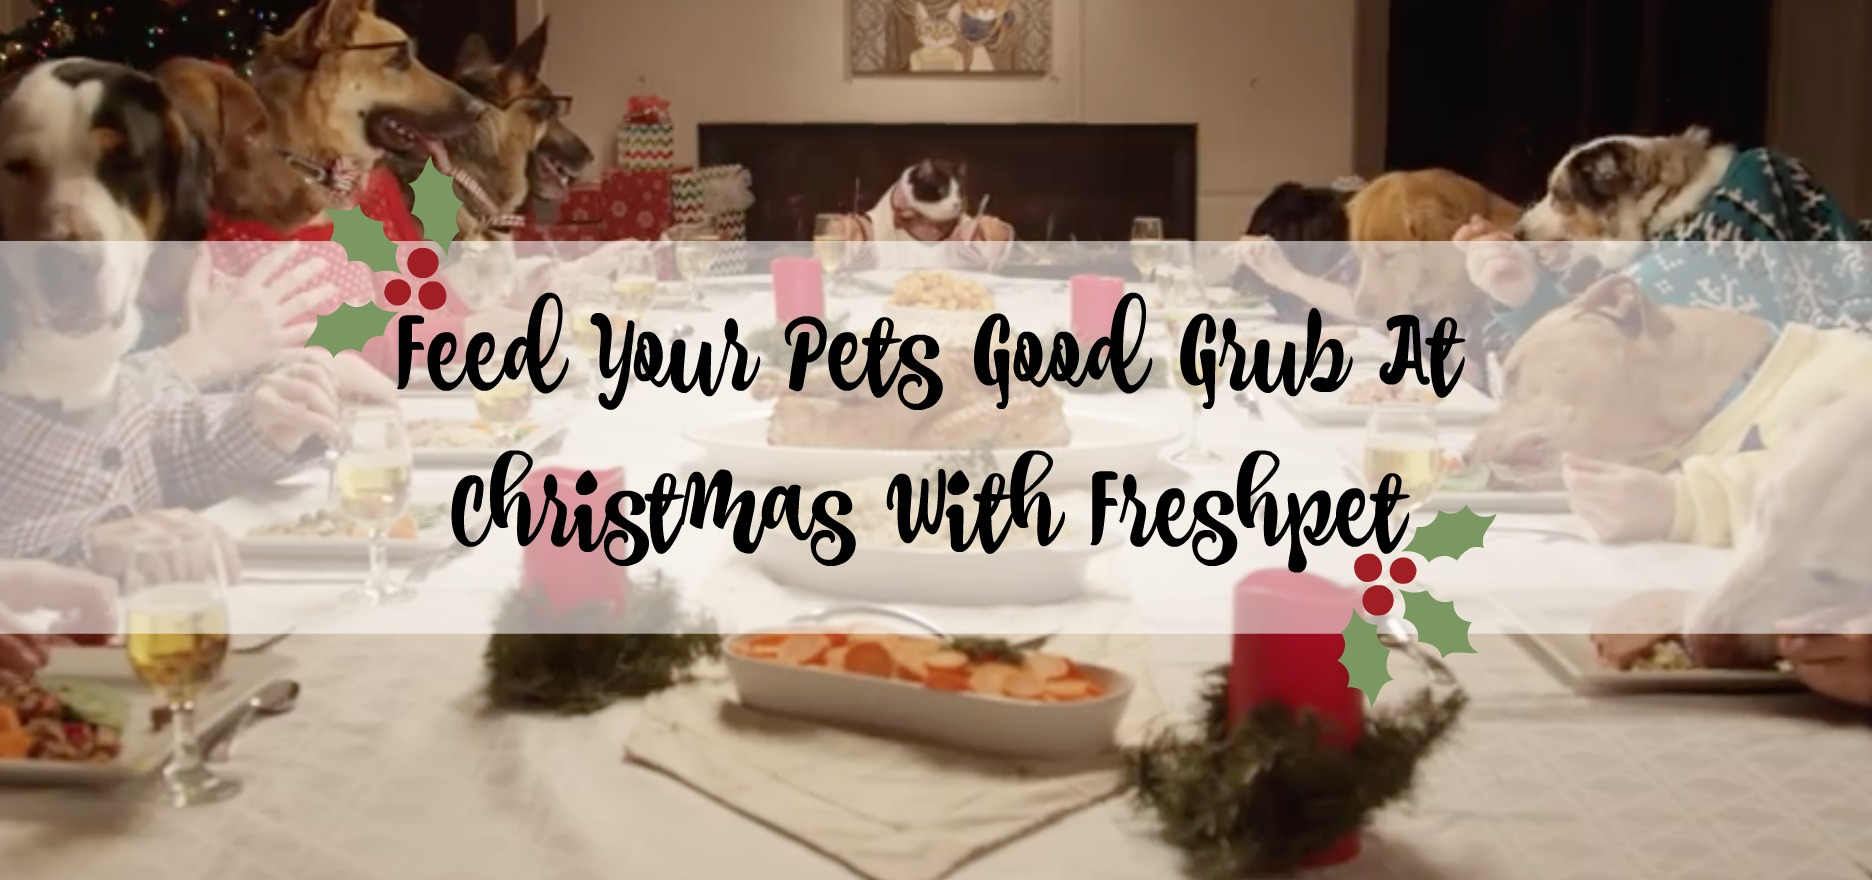 Feed Your Pets Good Grub At Christmas With Freshpet